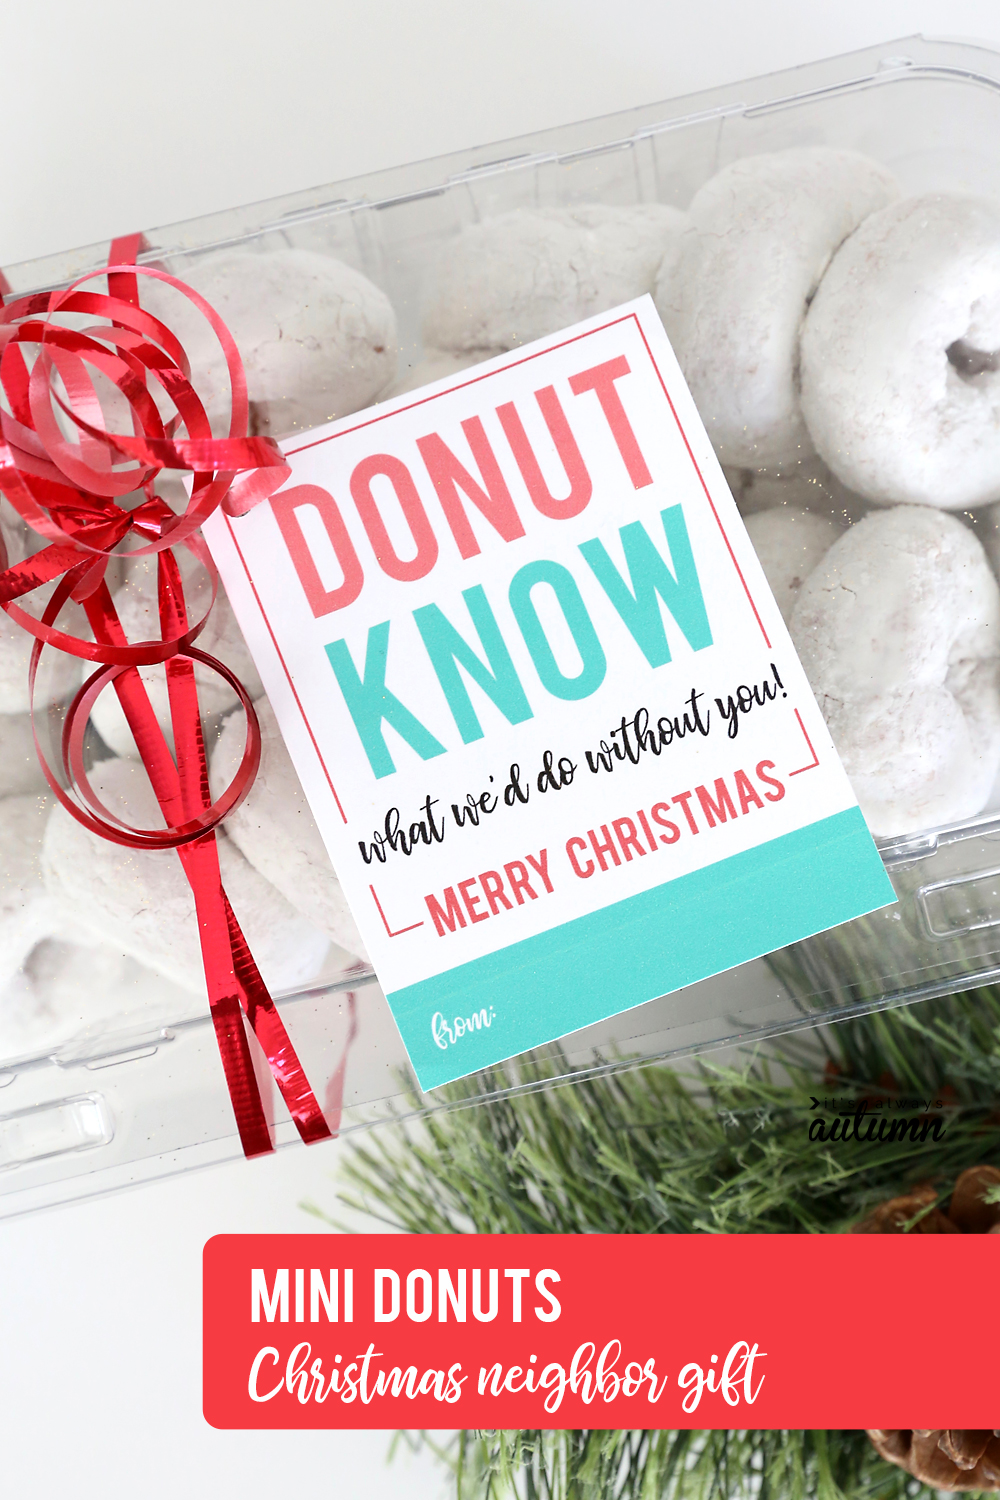 17 easy Christmas neighbor gift ideas with printable tags! Mini donuts neighbor gift idea.